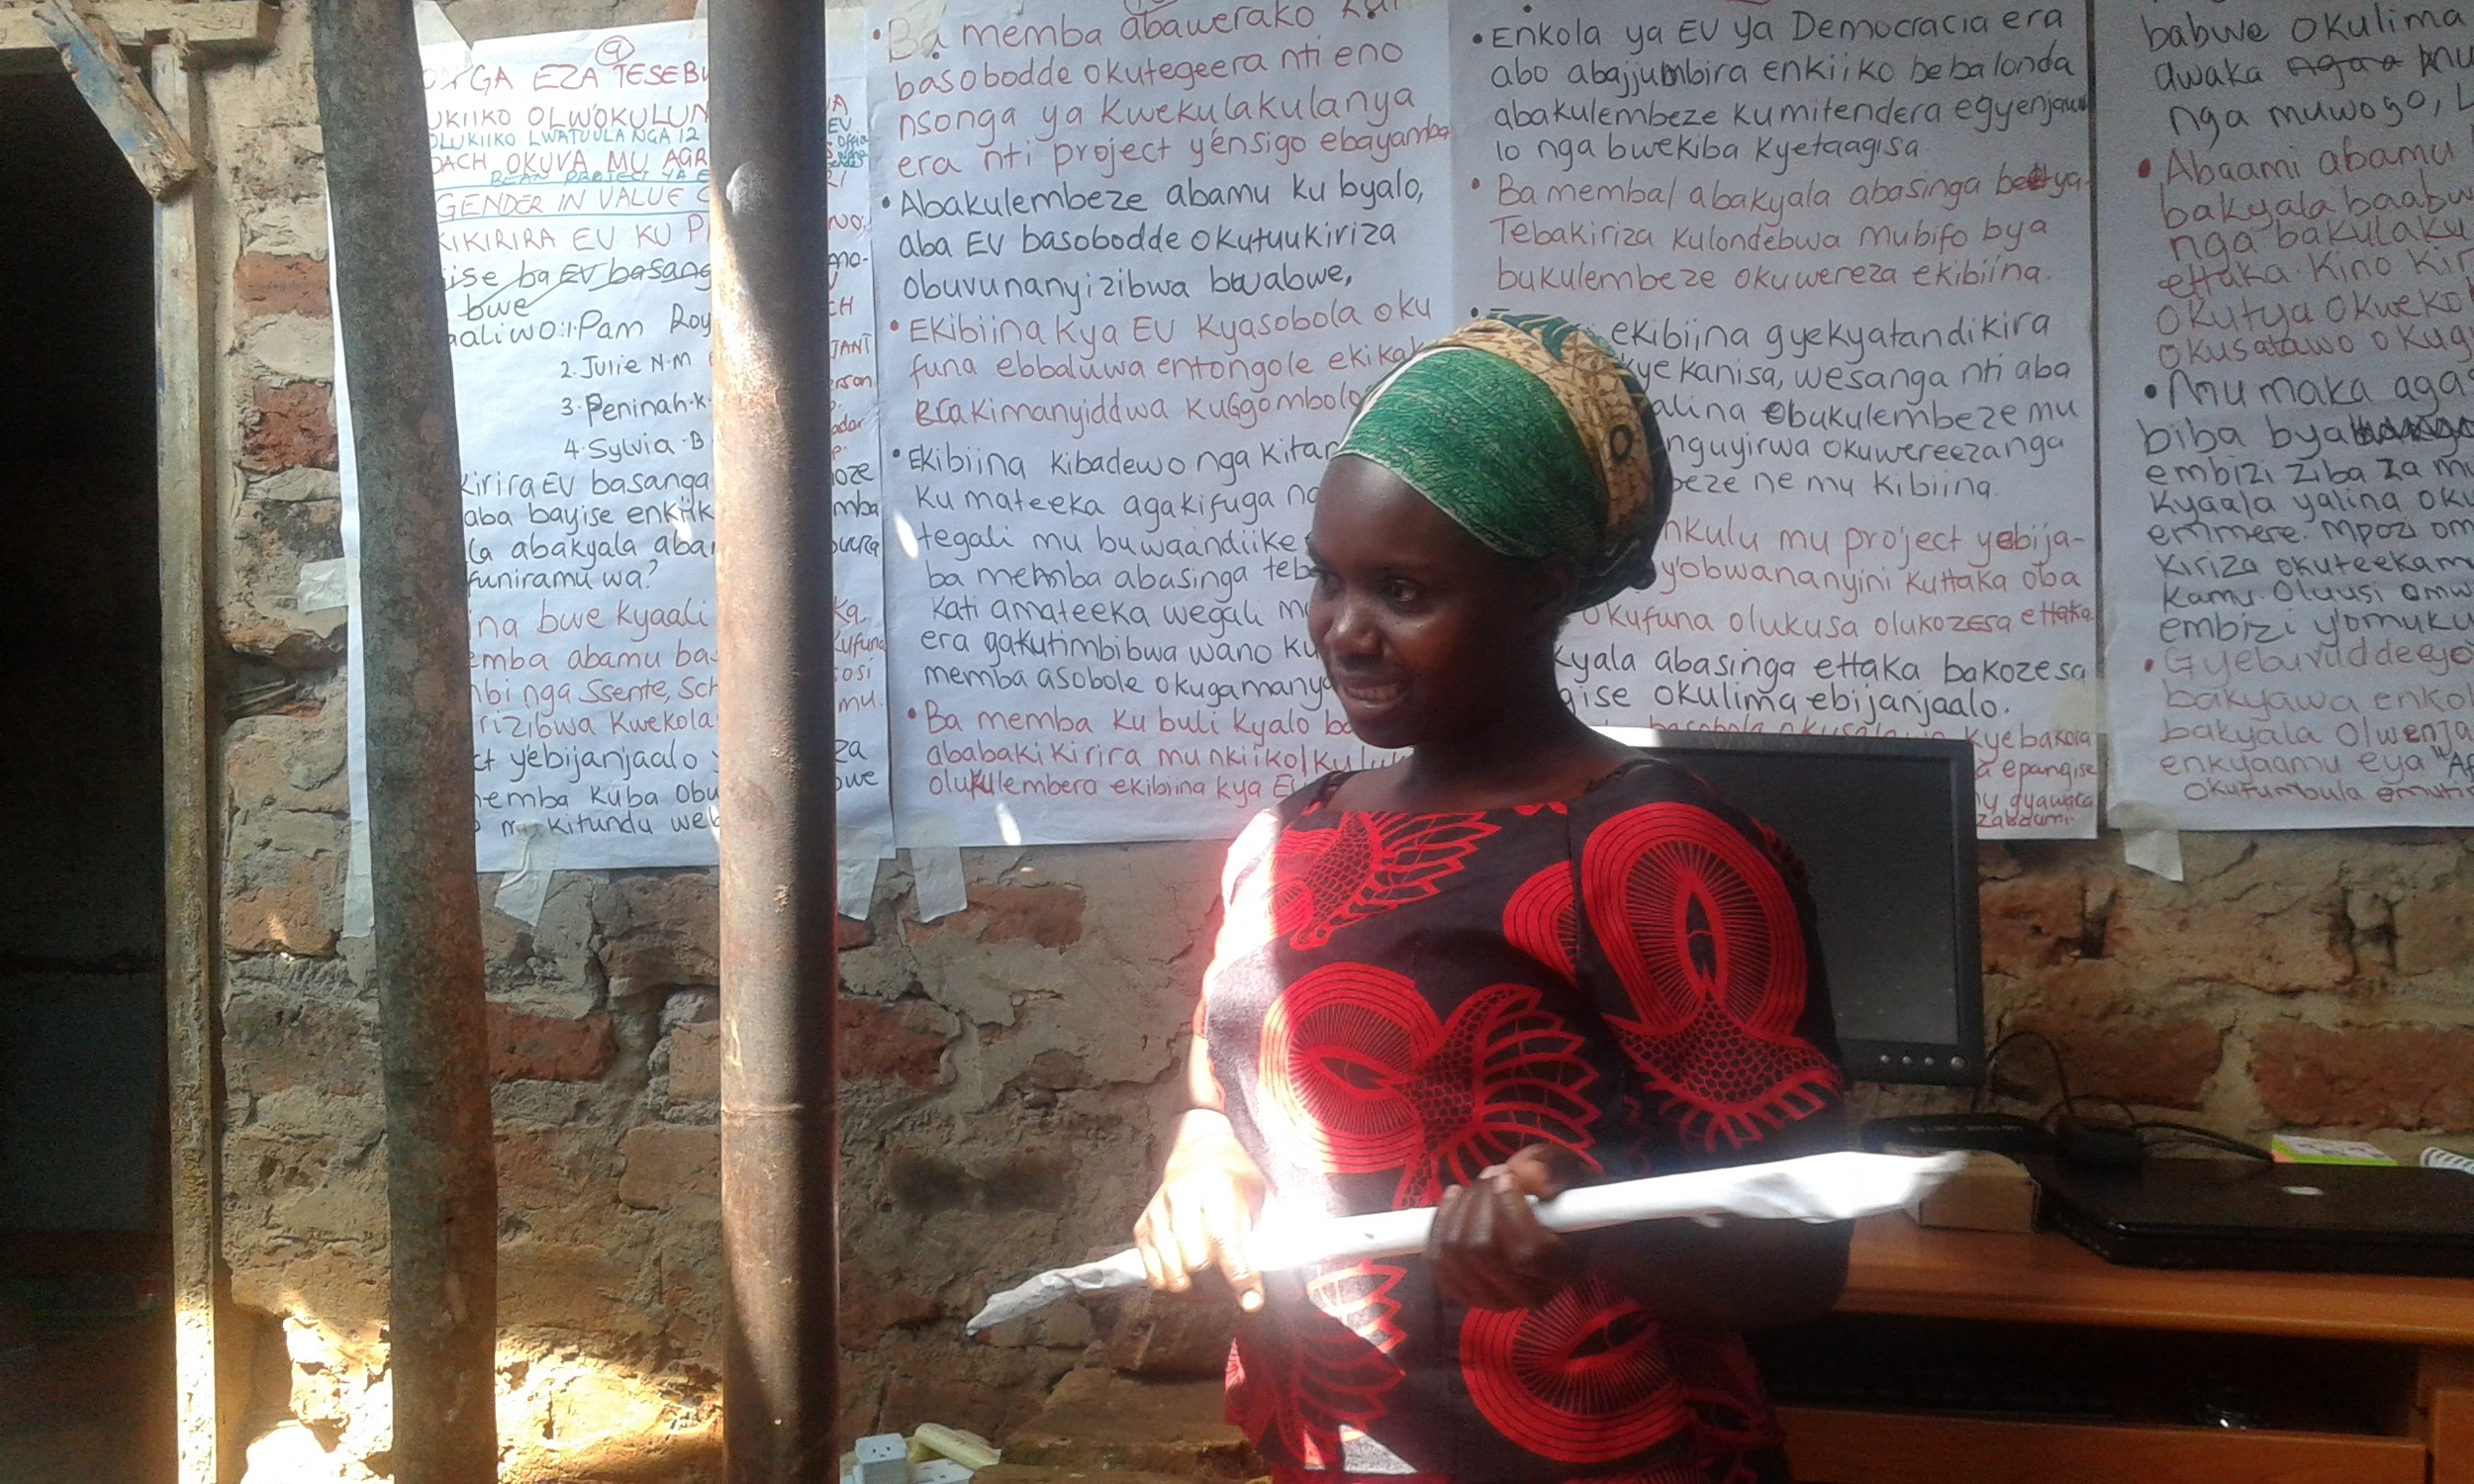 Sylvia - hardworking woman, stepping up to work for gender equality in Empowered Voices.